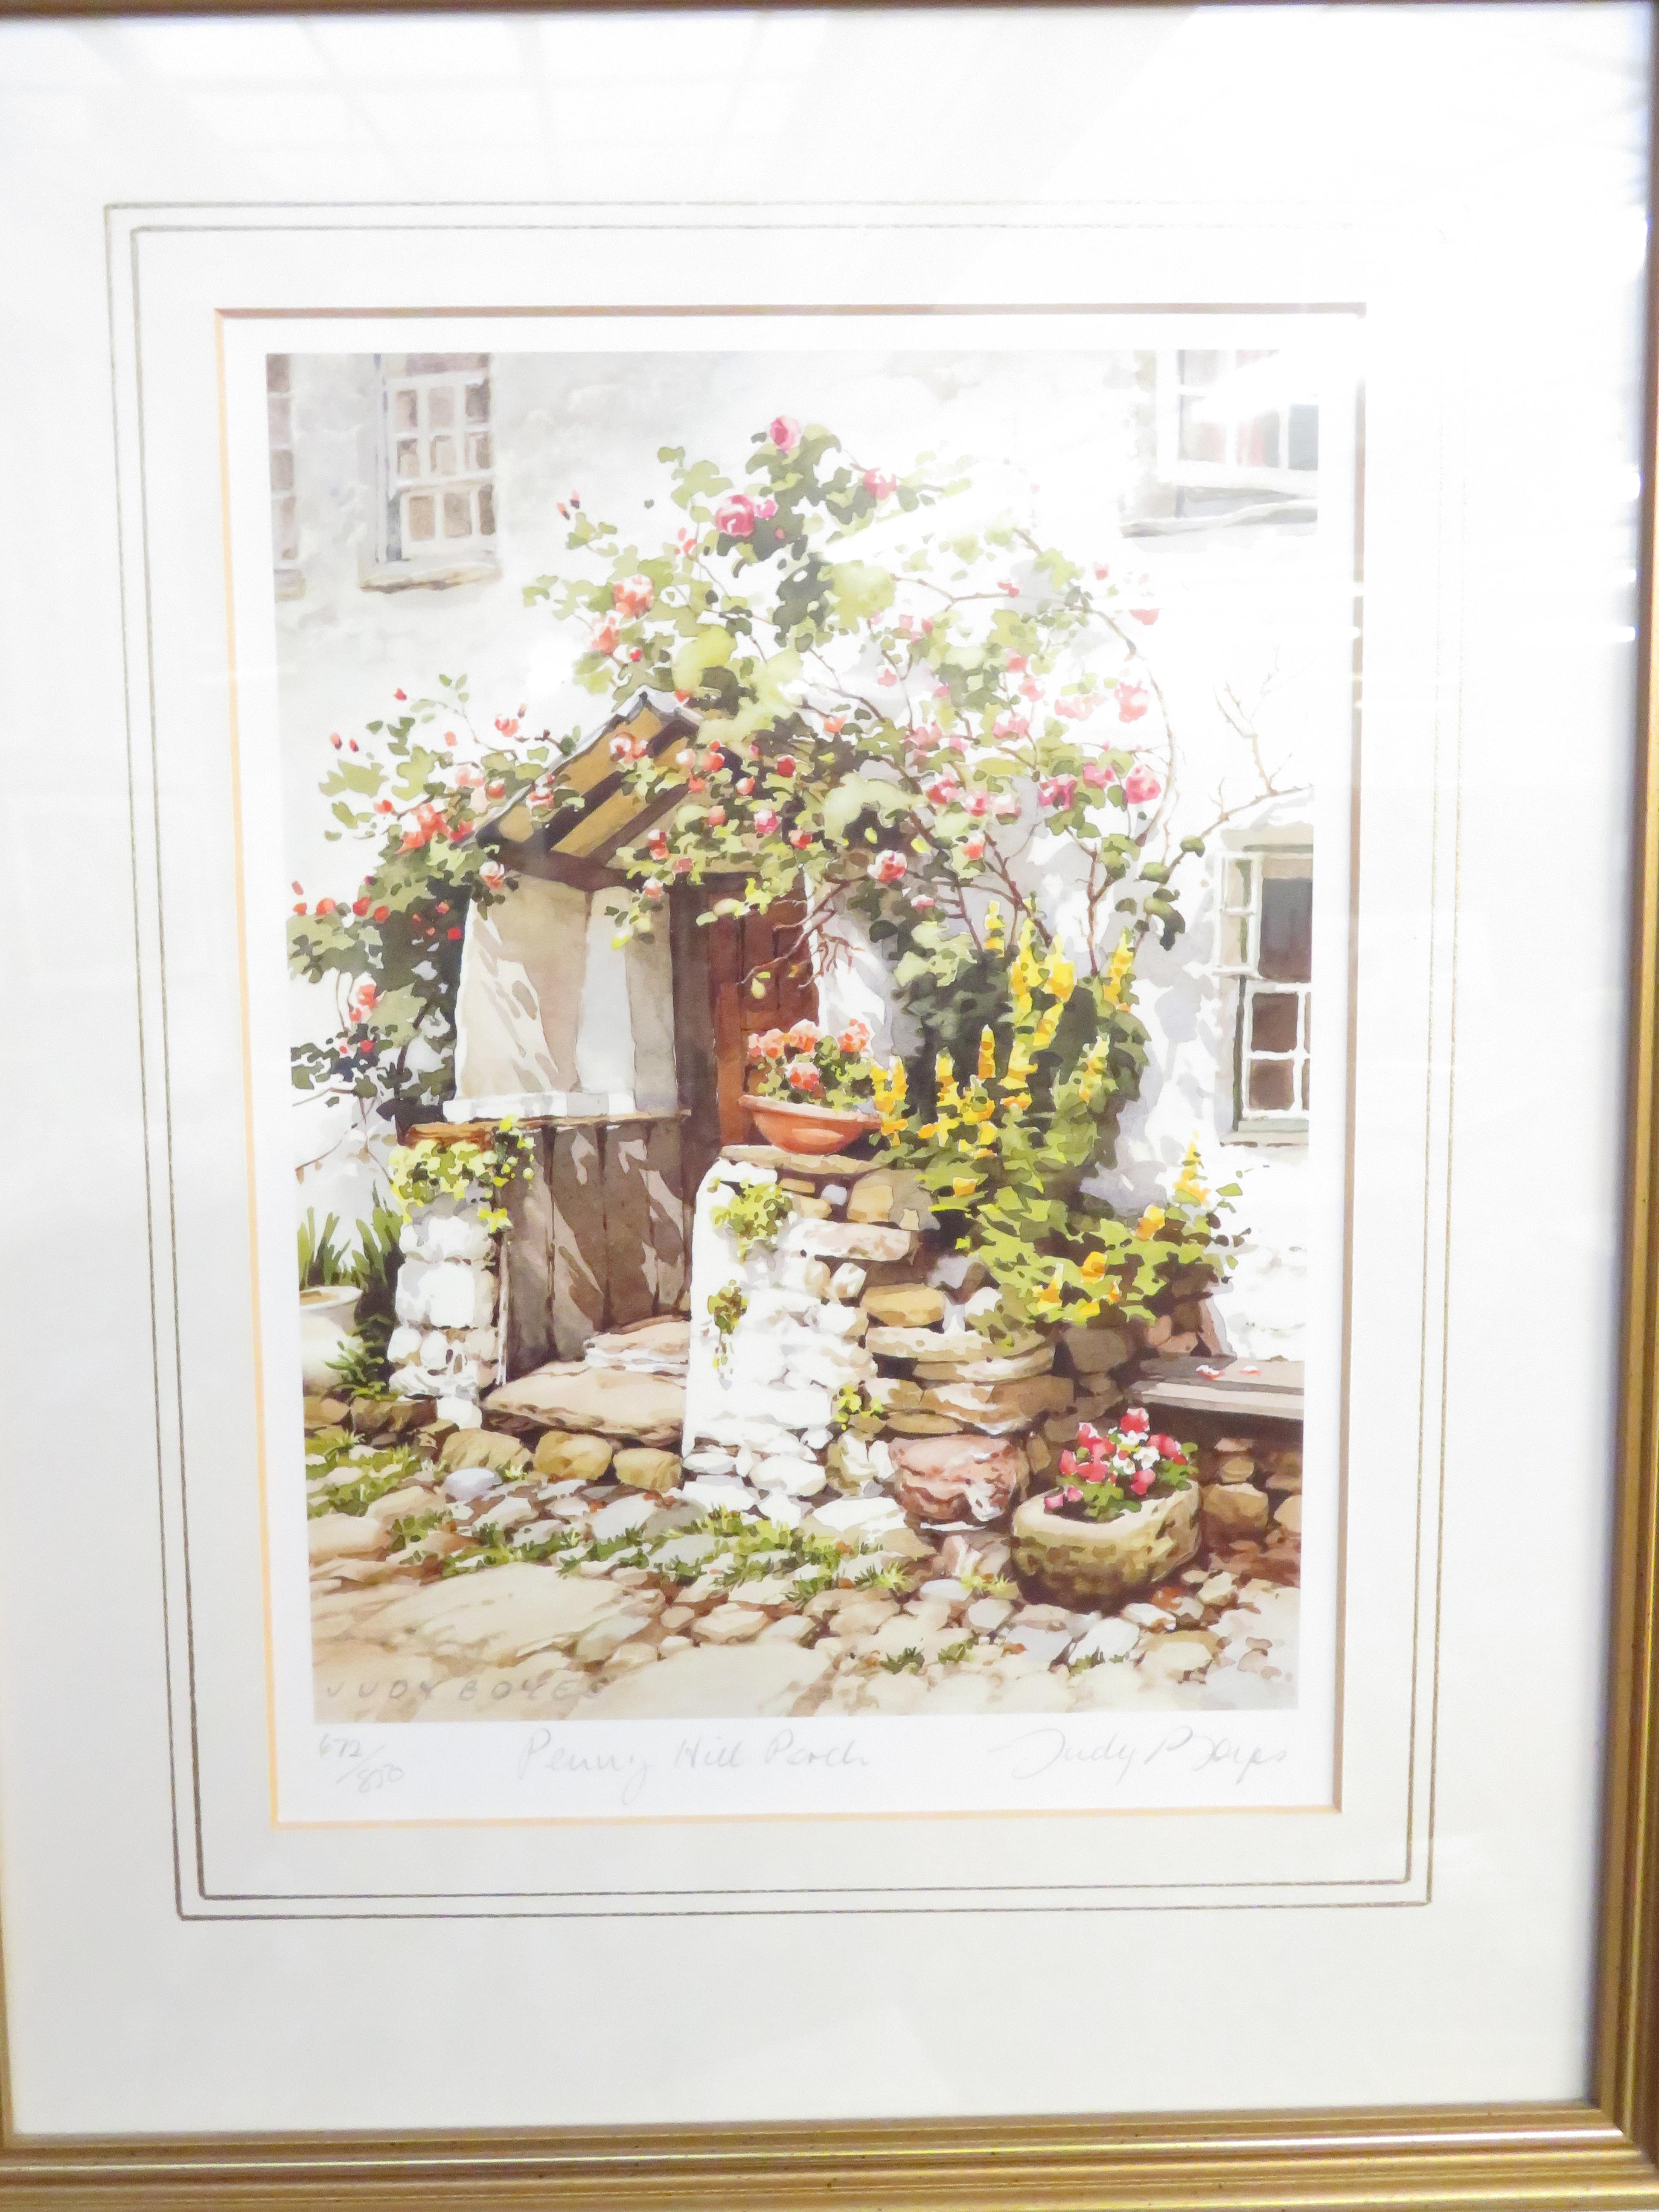 Lot 32 - Limited edition signed print by Judy Boyes, Titled